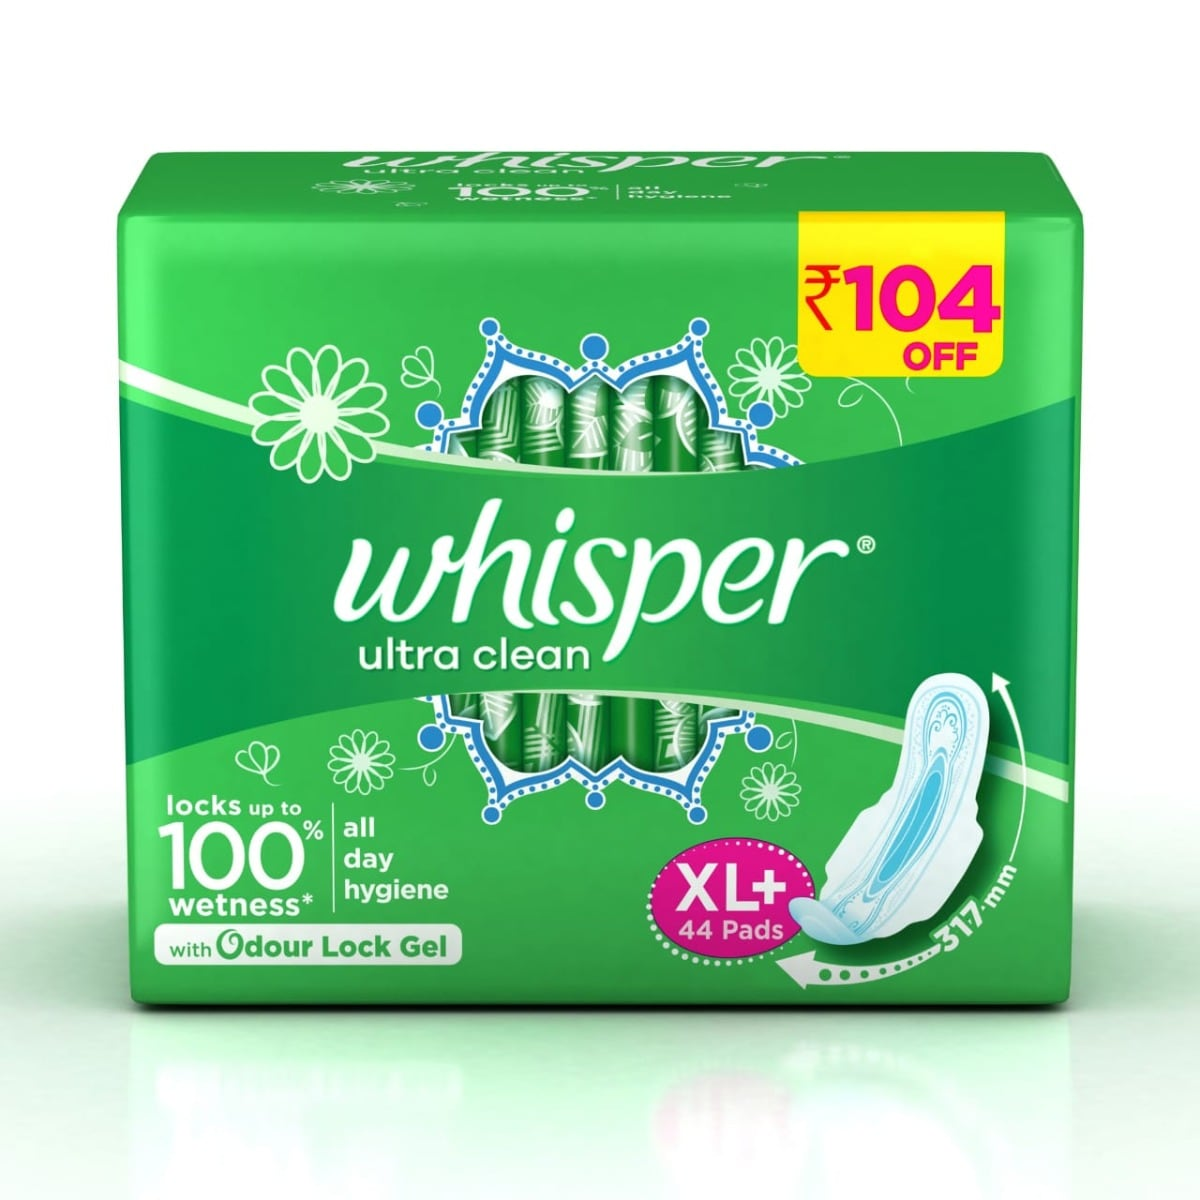 Whisper Ultra Clean Wings Sanitary Pads XL+, 44 Count, Pack of 1